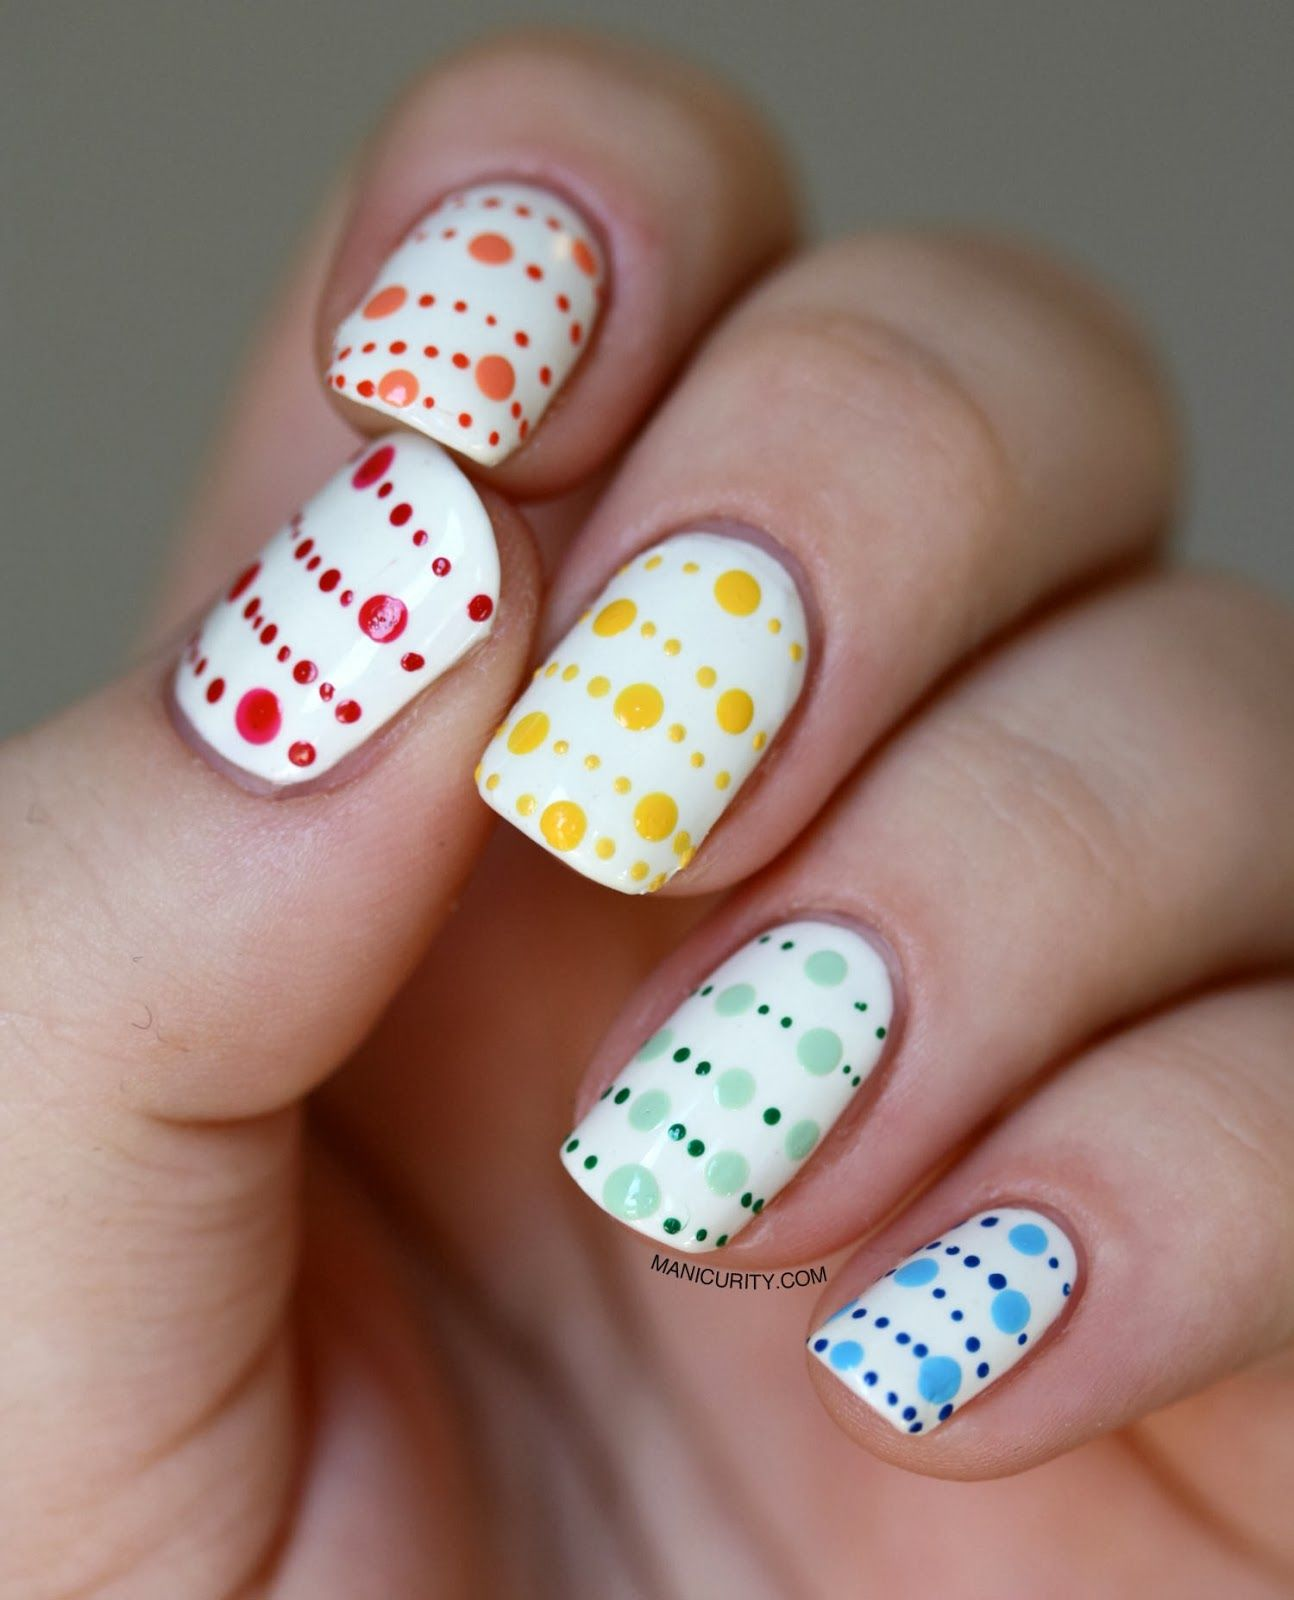 Pin by anastasia högele on nail art pinterest nail nail